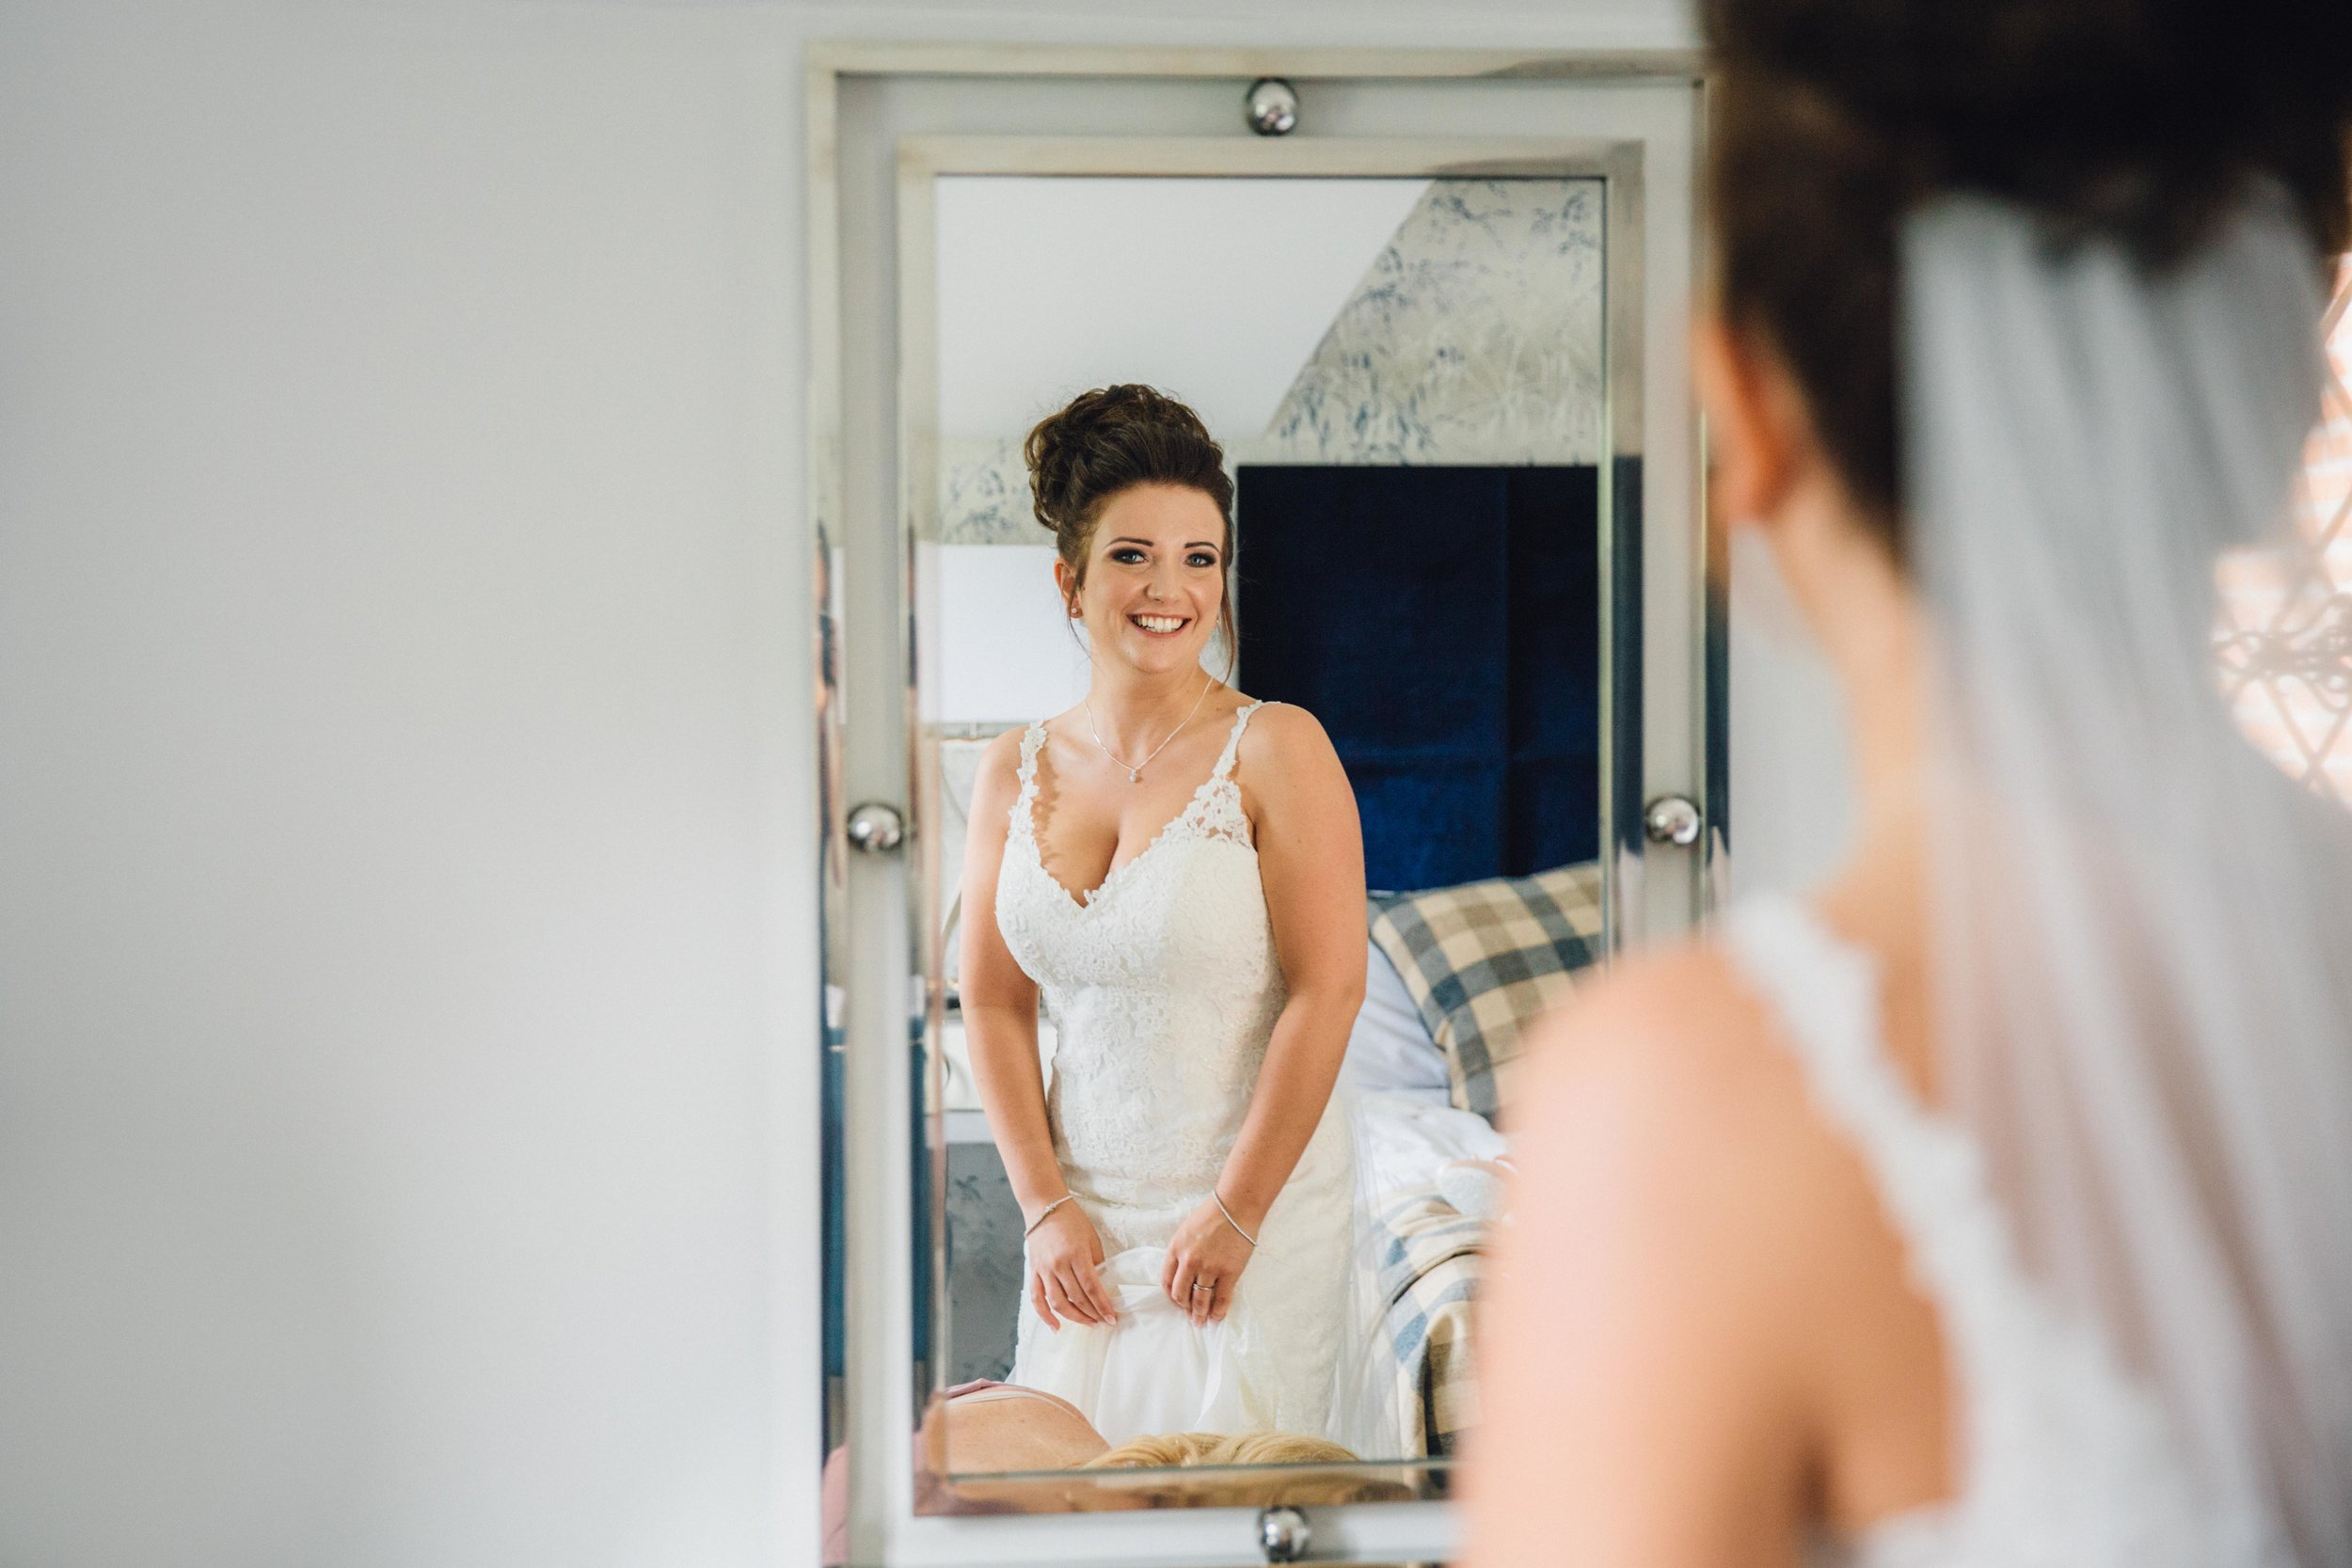 """Once Danielle's hair and make up was perfected she acknowledged her status as """"fittest bride ever"""" and all of a sudden her nerves turned to excitement."""